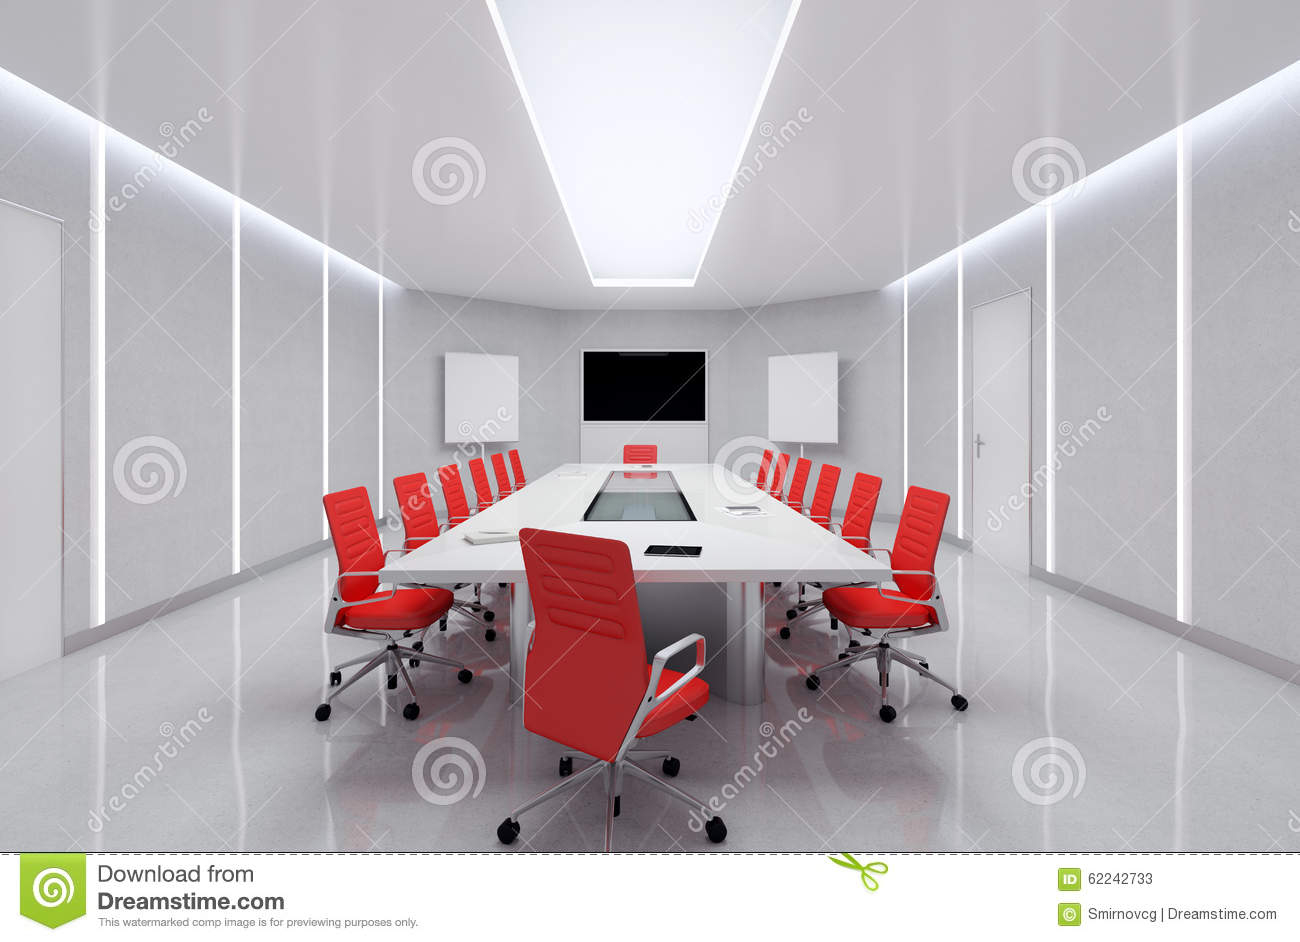 Red Meeting Room Chairs red and black meeting room chairsred and